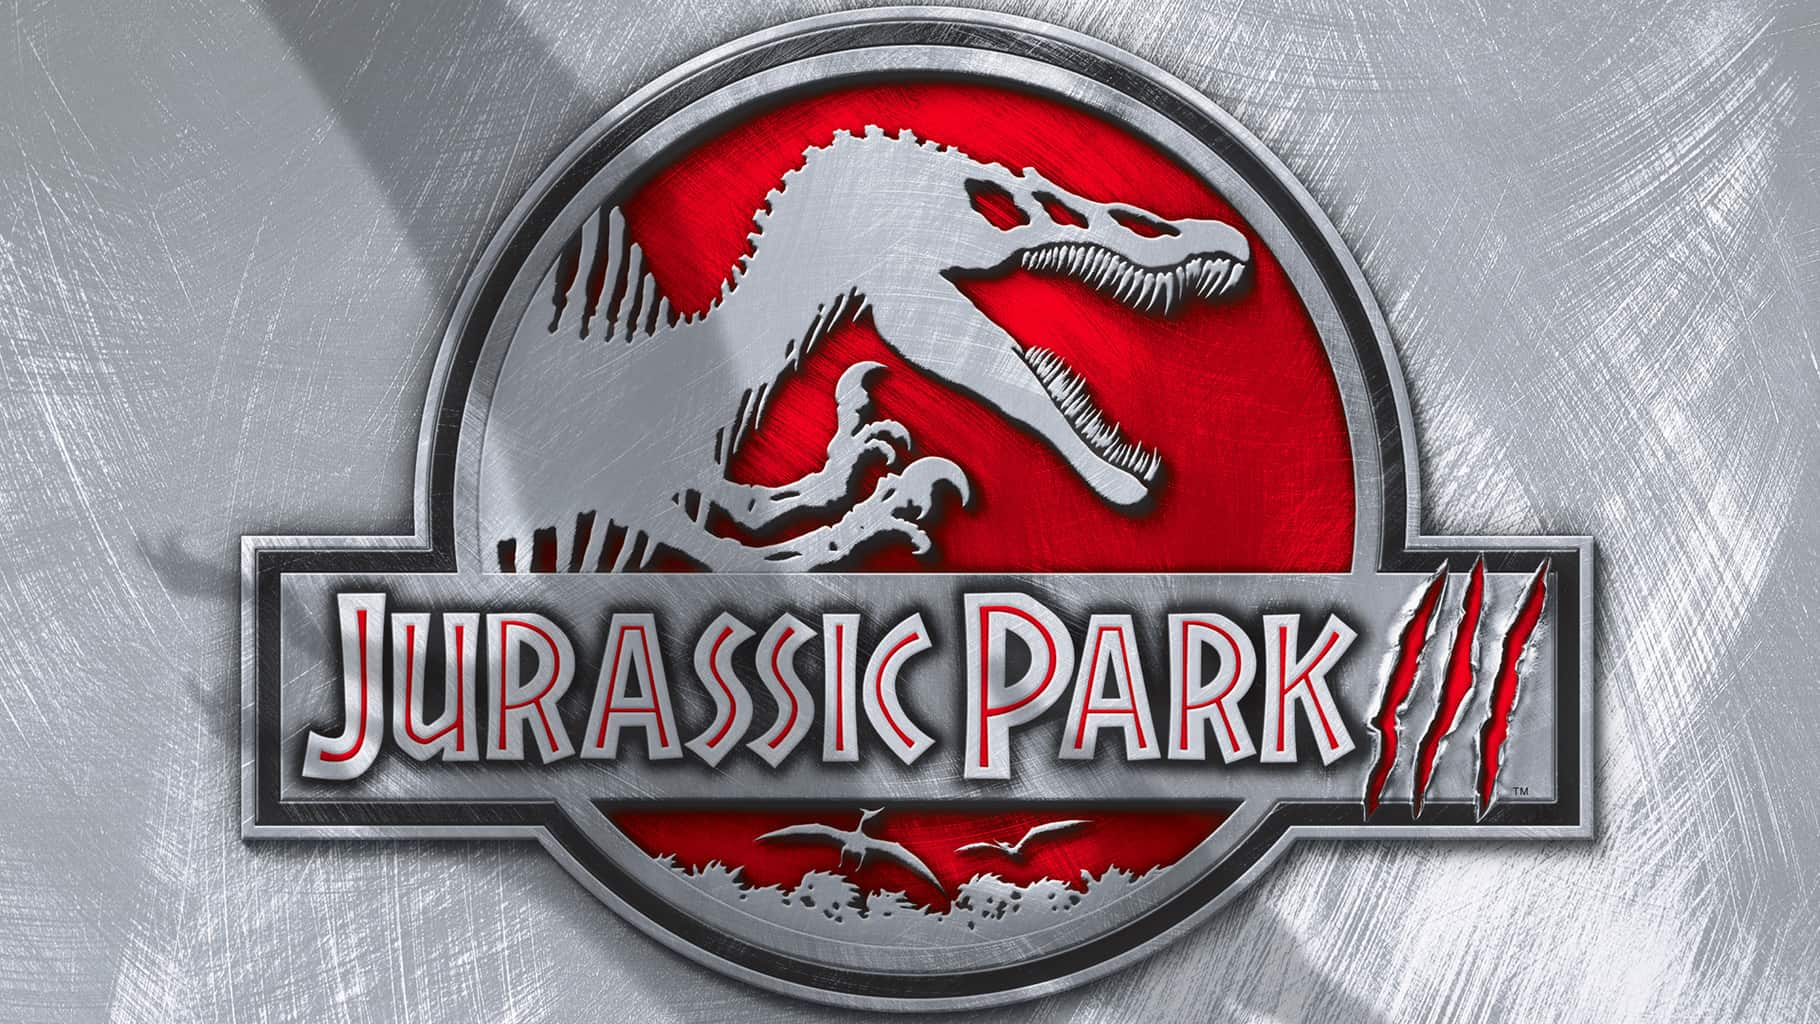 20 Years In The Making: A New Look At Jurassic Park III